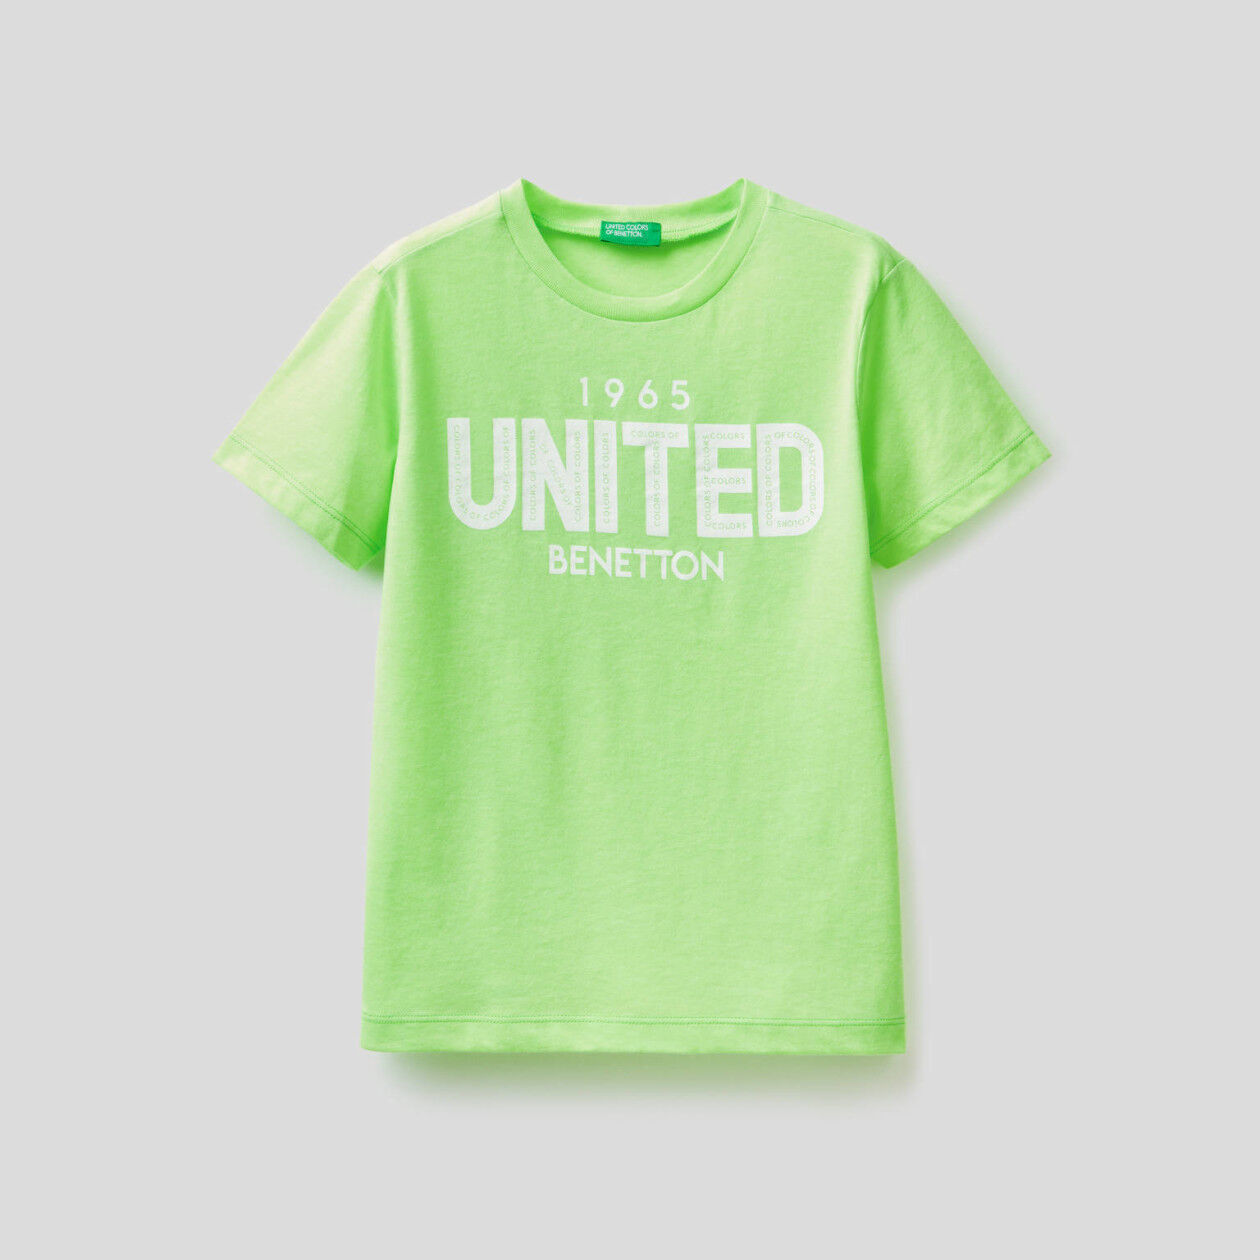 T-Shirt in Neonfarbe